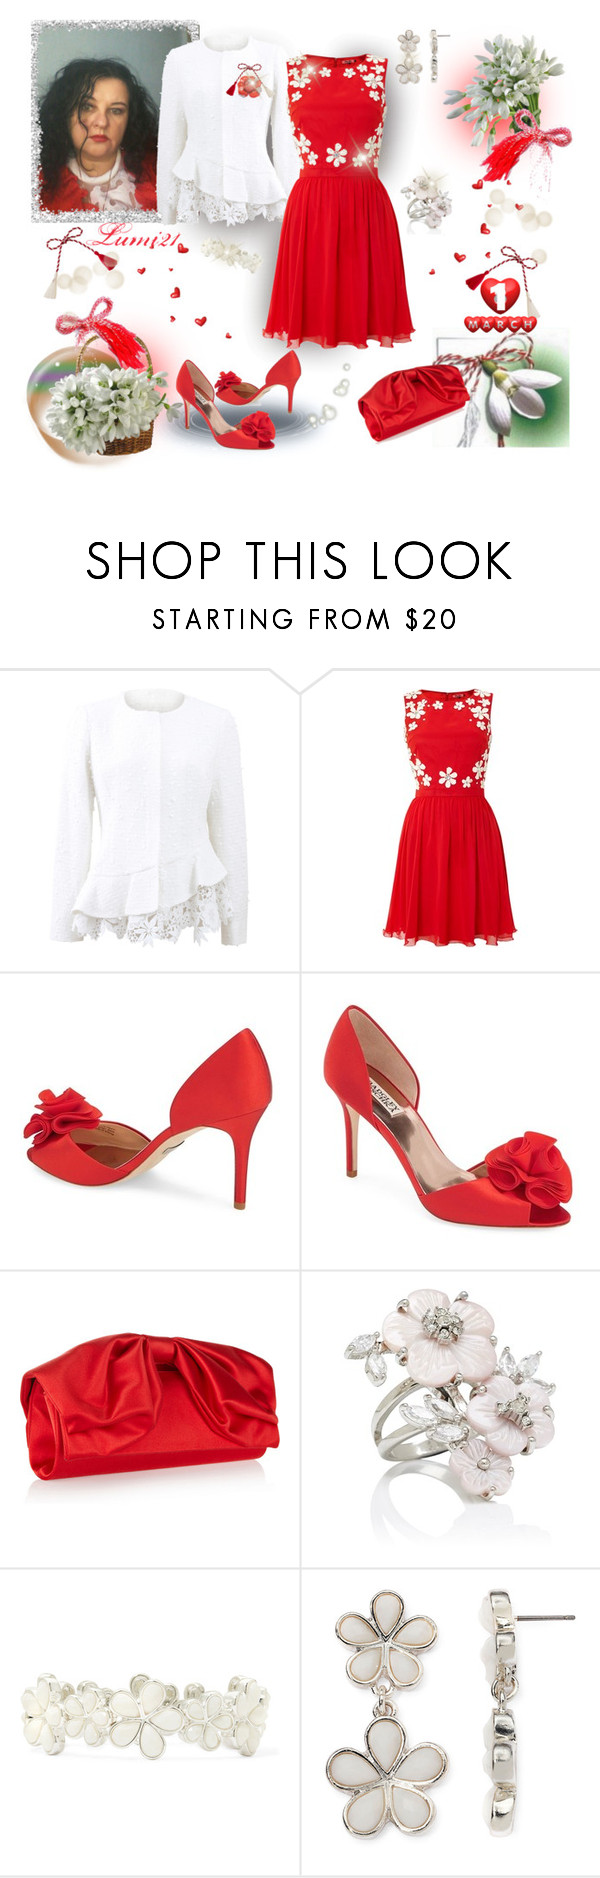 """MARTISOR! (HAVE A HAPPY SPRING!)"" by lumi-21 ❤ liked on Polyvore featuring Oscar de la Renta, Chi Chi, Badgley Mischka, Valentino, Forever New, Liz Claiborne, Cartier, modern, country and martisor"